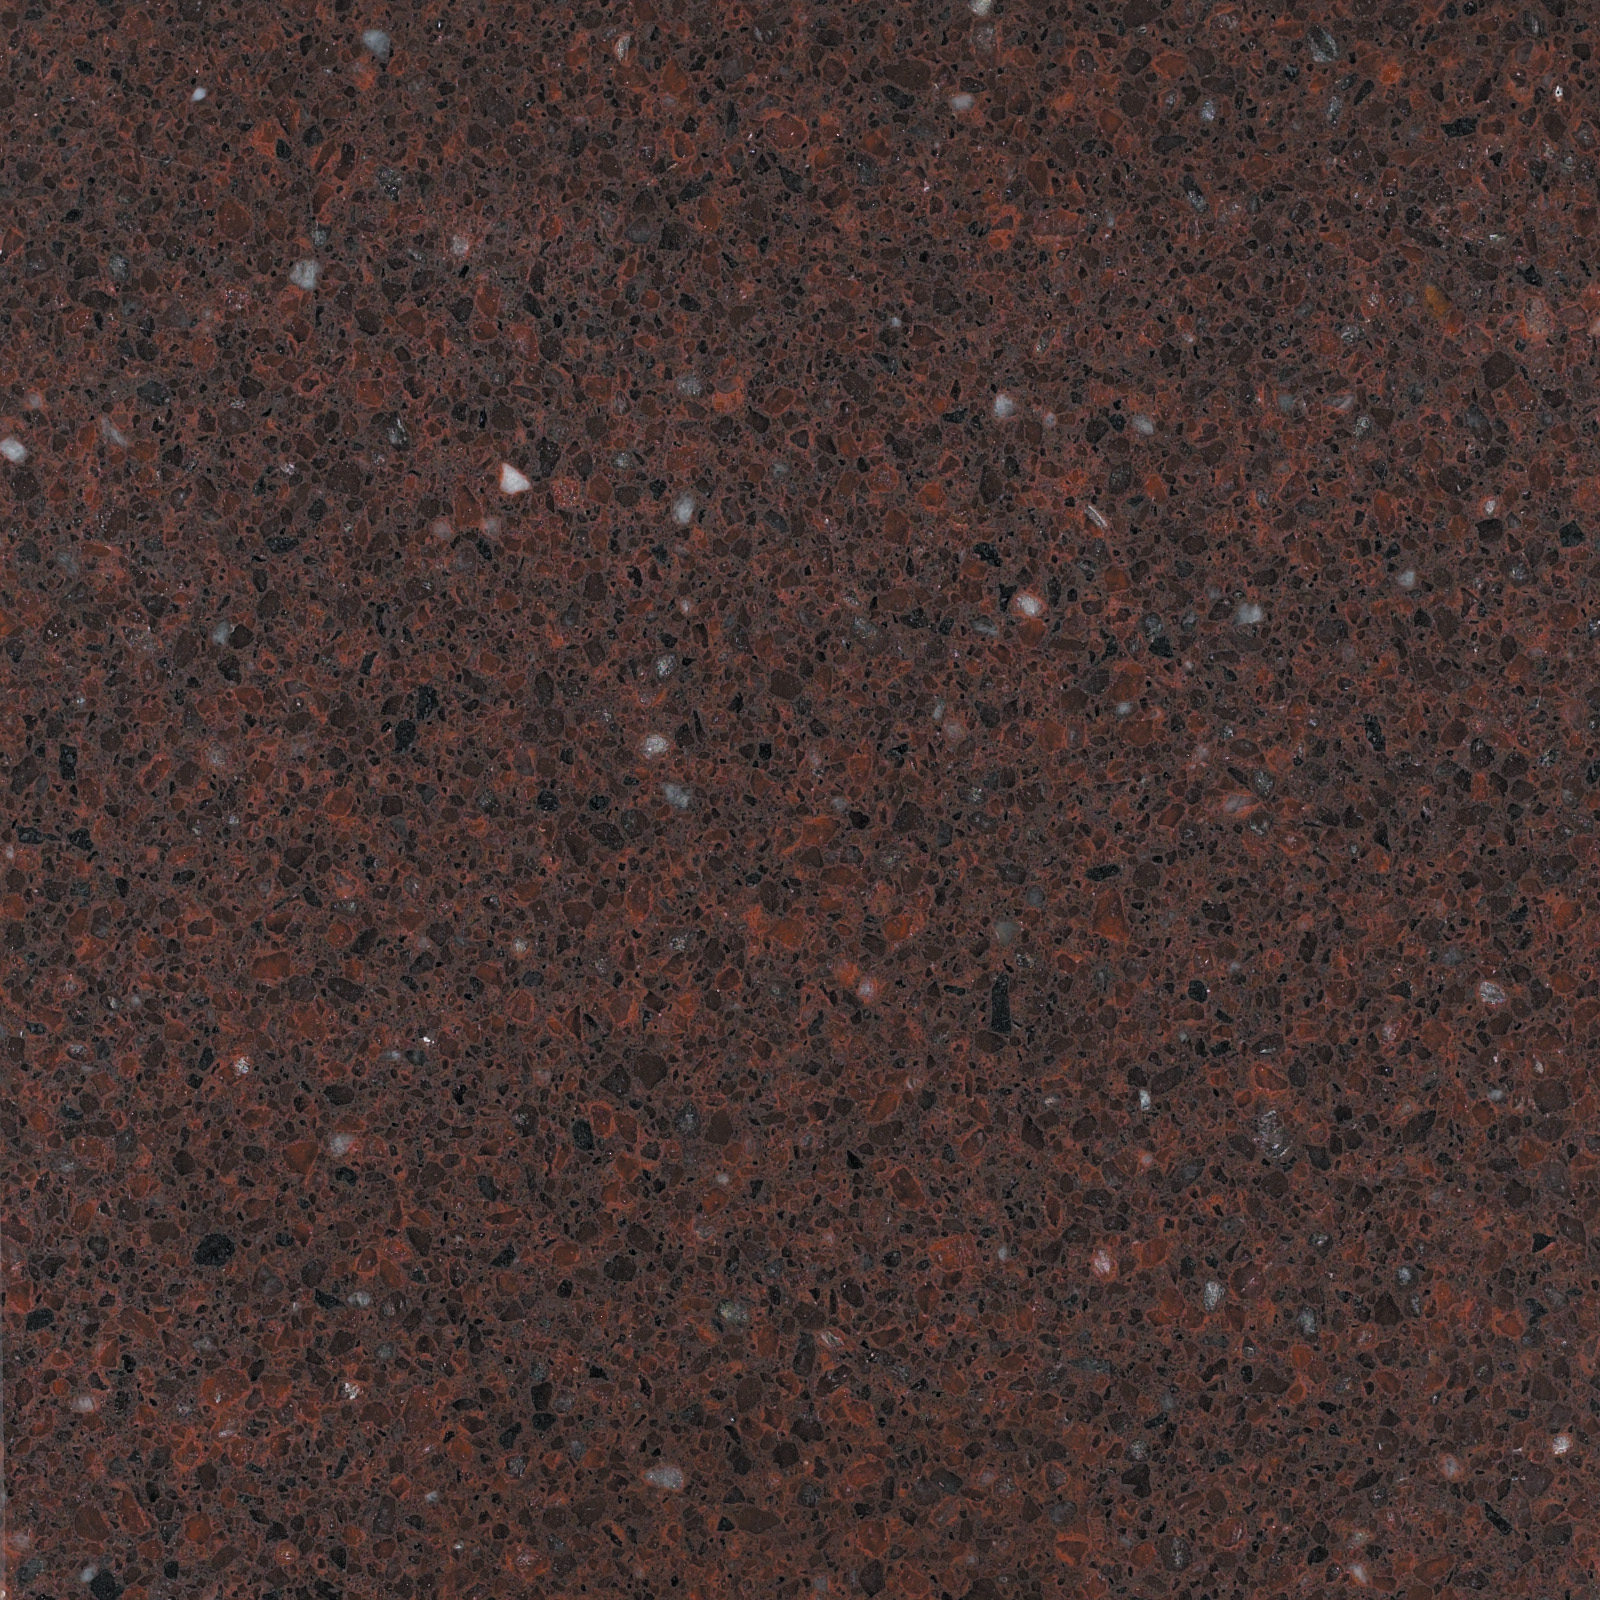 Copper Canyon Granite Countertops Caesarstone Quartz Countertops